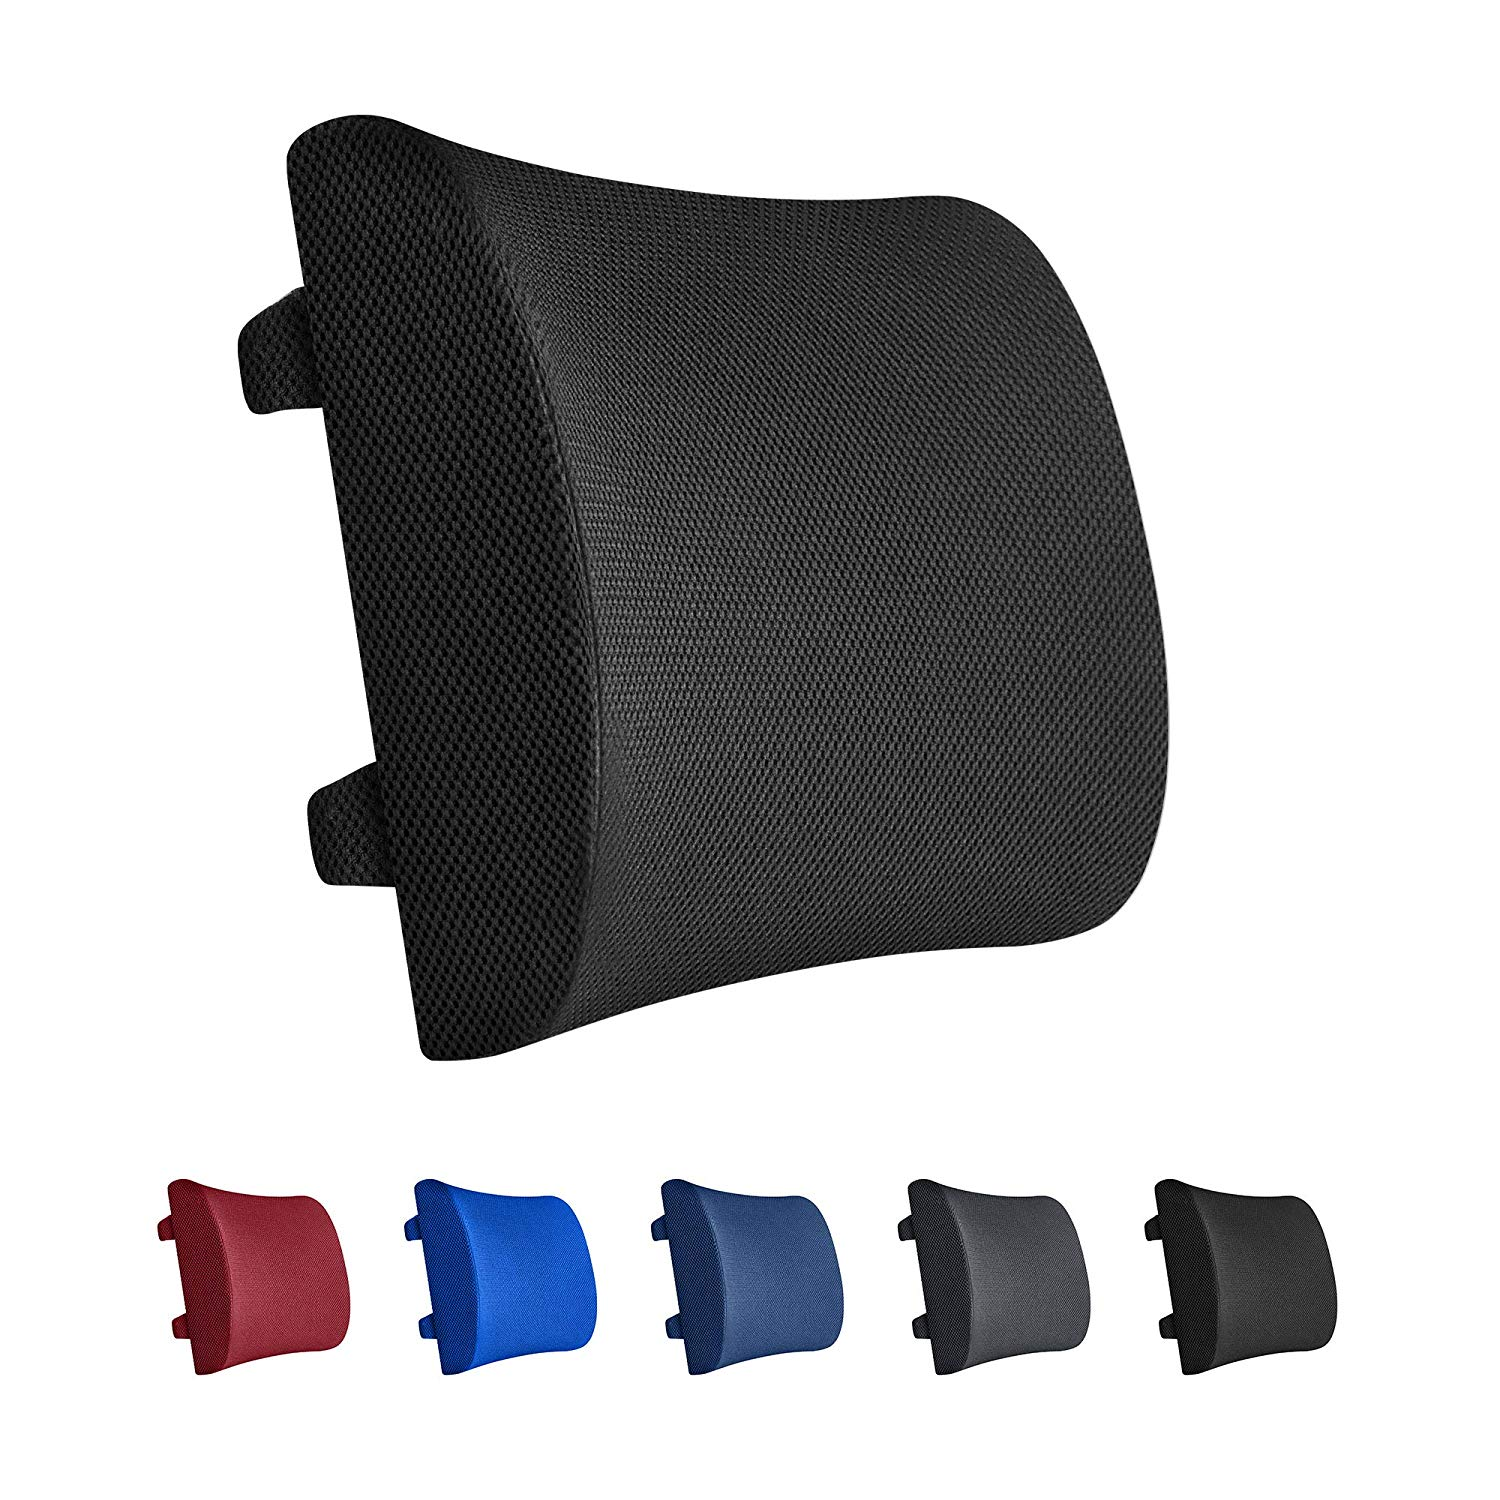 Everlasting comfort 100% pure memory foam back cushion-lumbar support pillow for office, car, and chair, standard, black